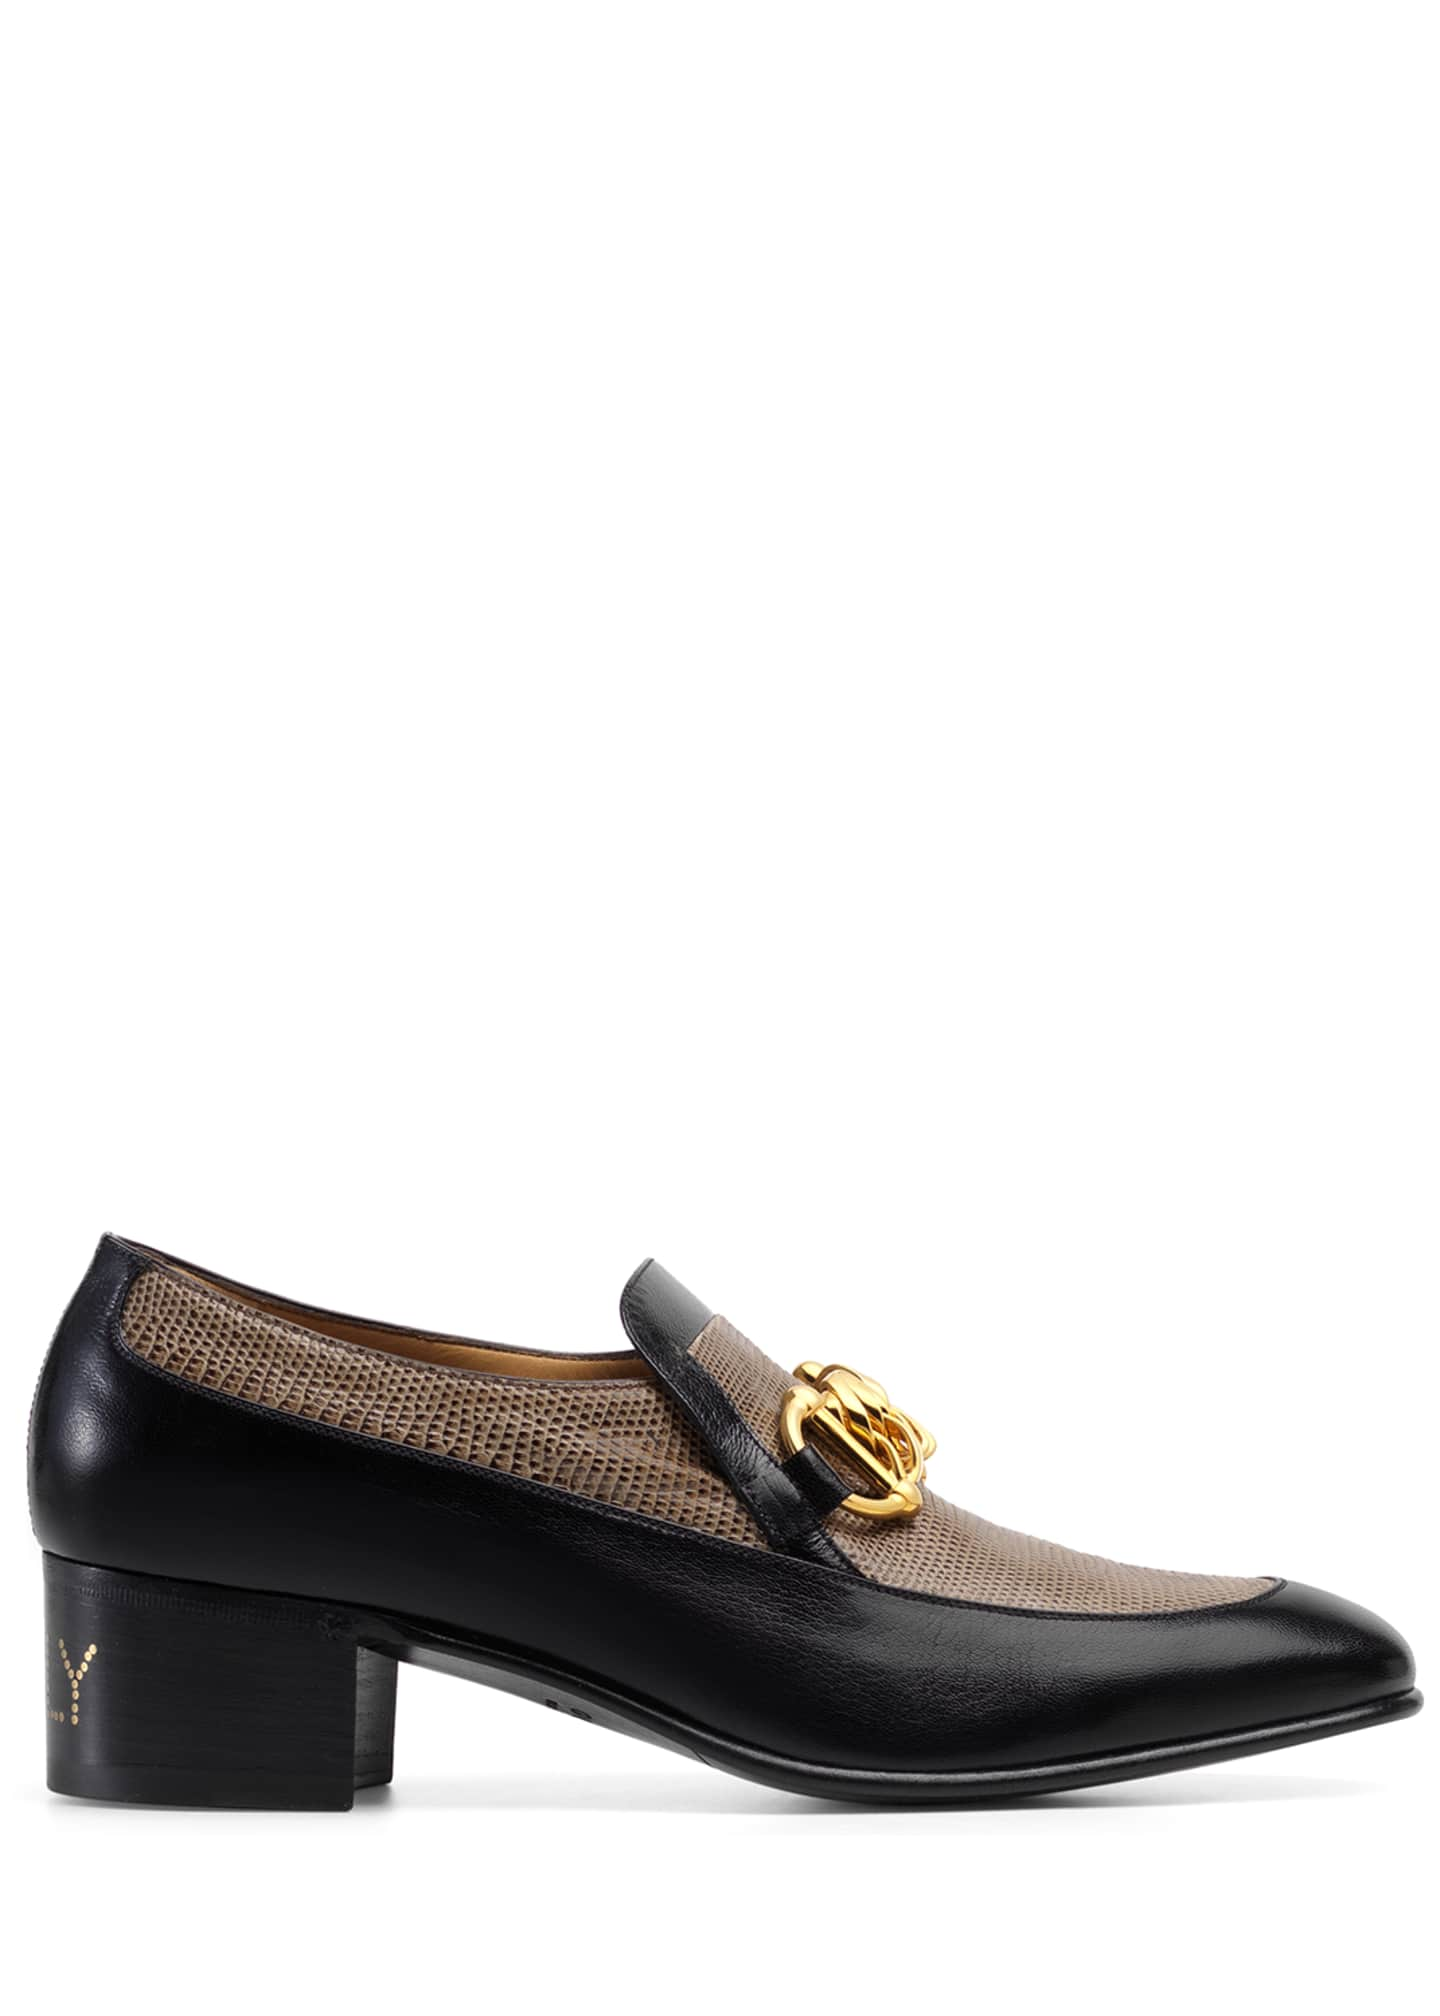 Image 2 of 4: Men's Ebal Horsebit Leather & Lizard Loafers